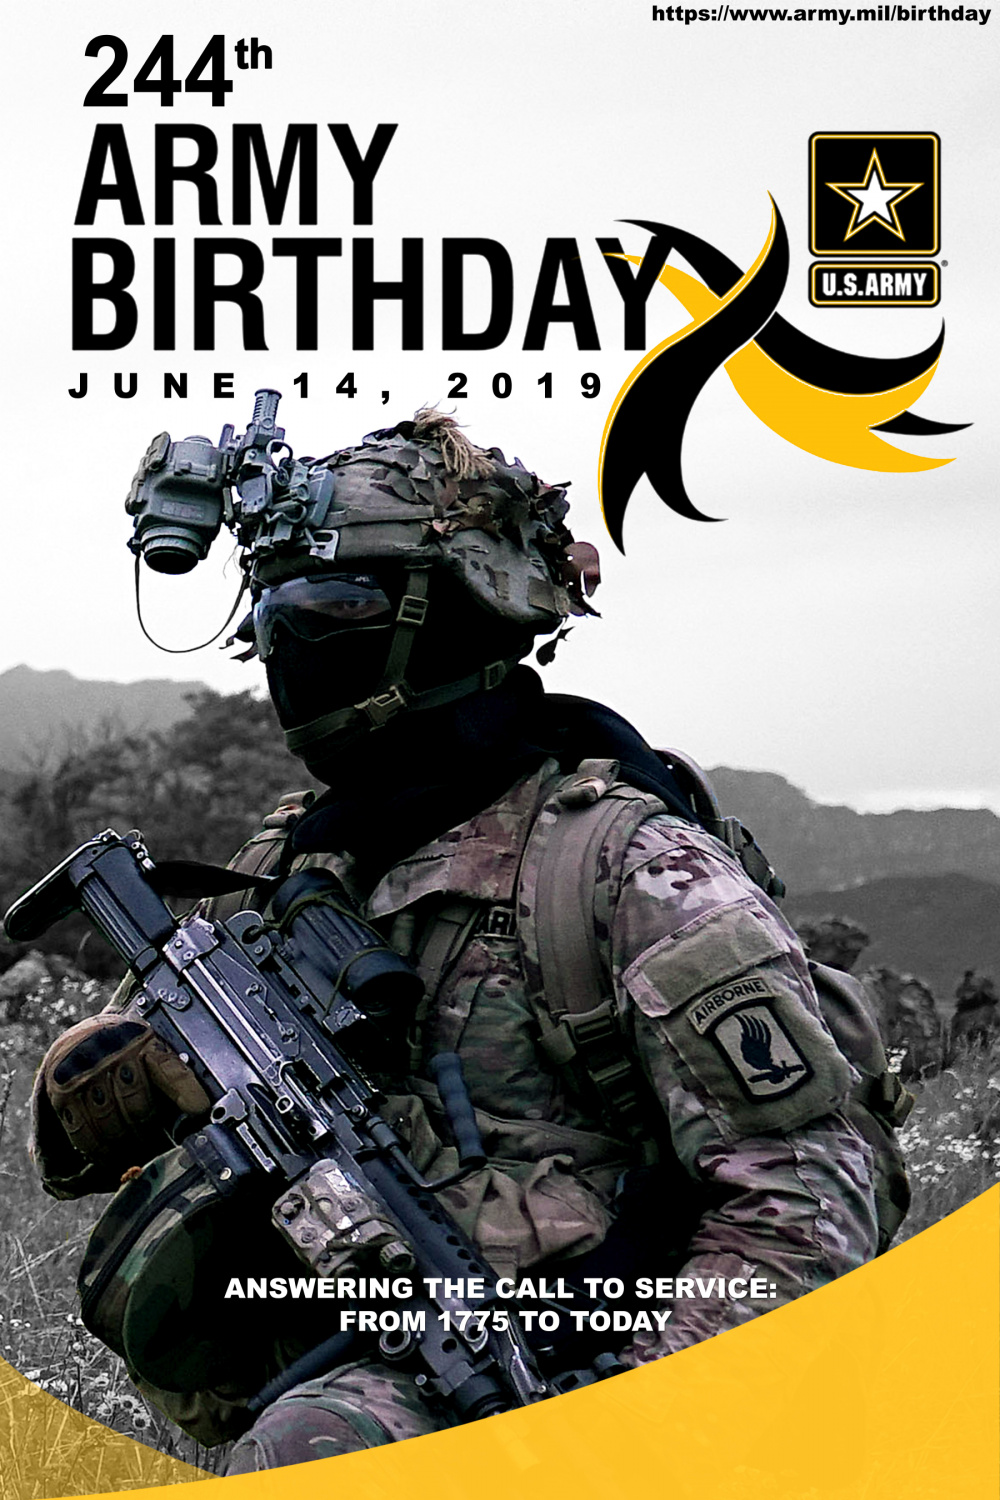 244th Army Birthday Poster design(Present Day)